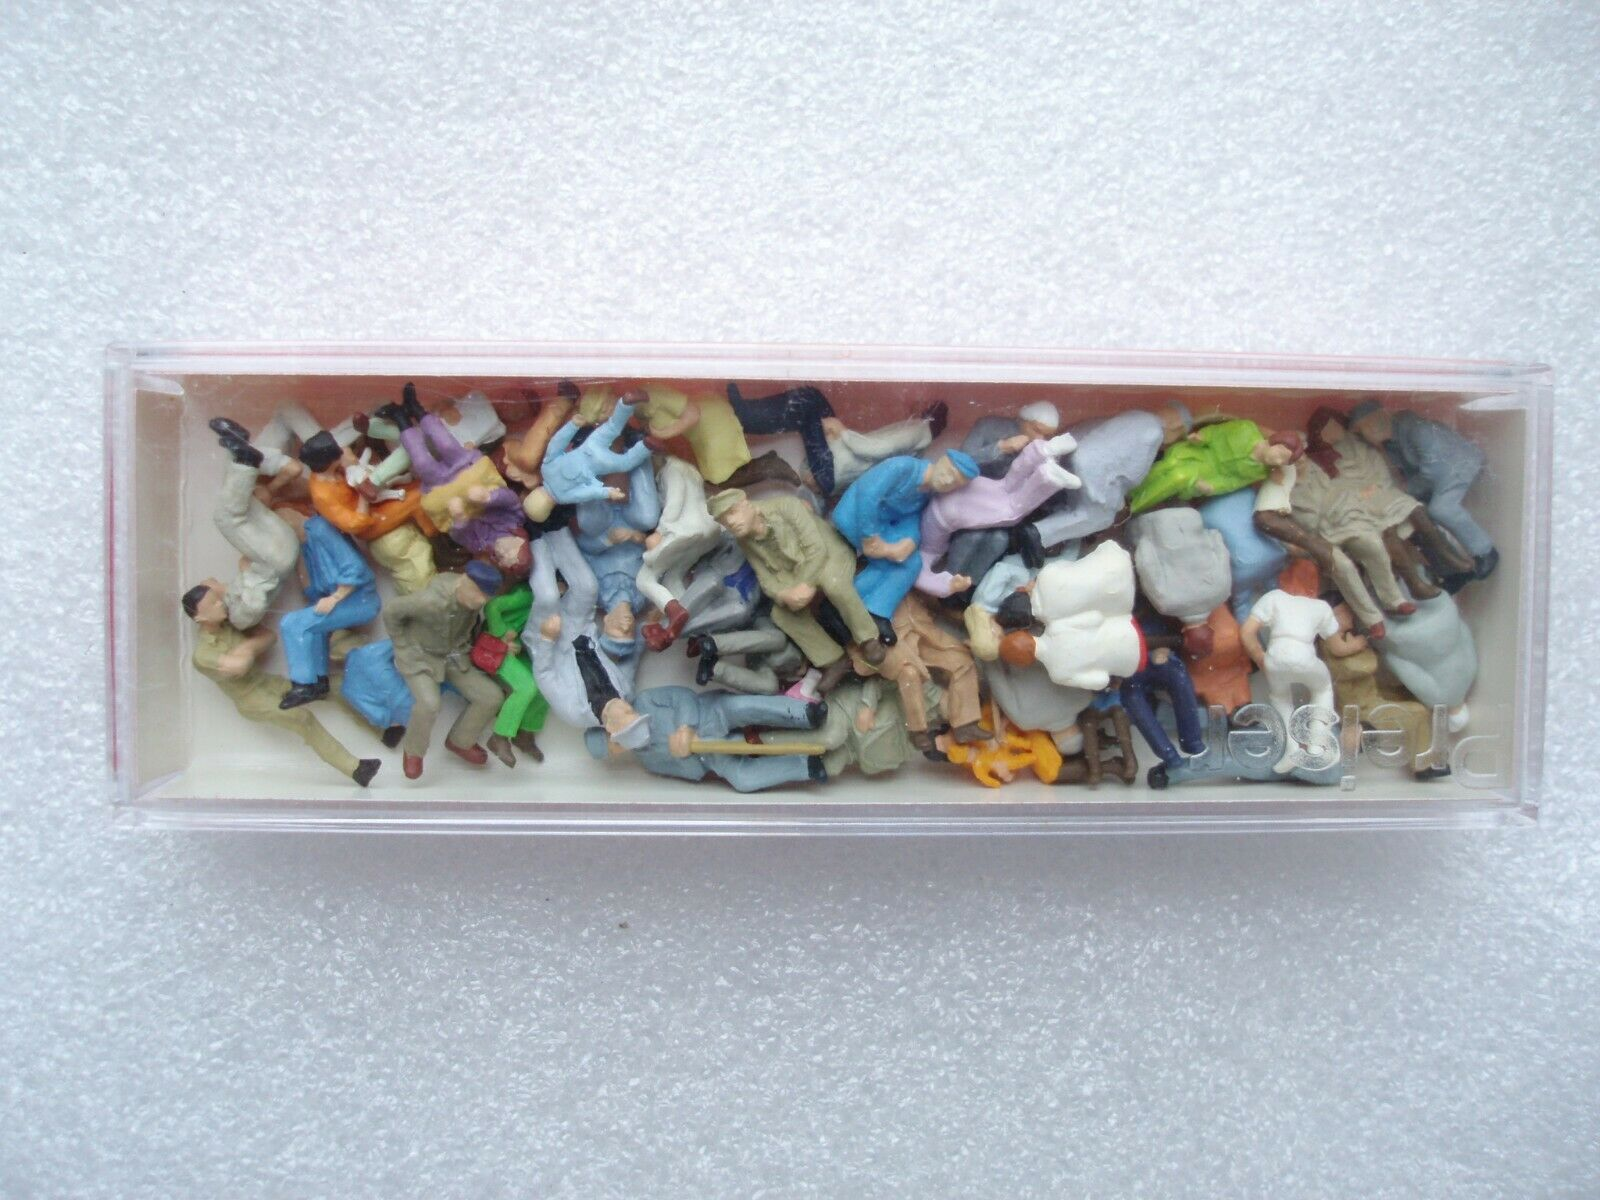 14416 PERSONNAGES ASSIS VOITURE VOYAGEURS ASSIS PREISER NEUF ECHELLE HO